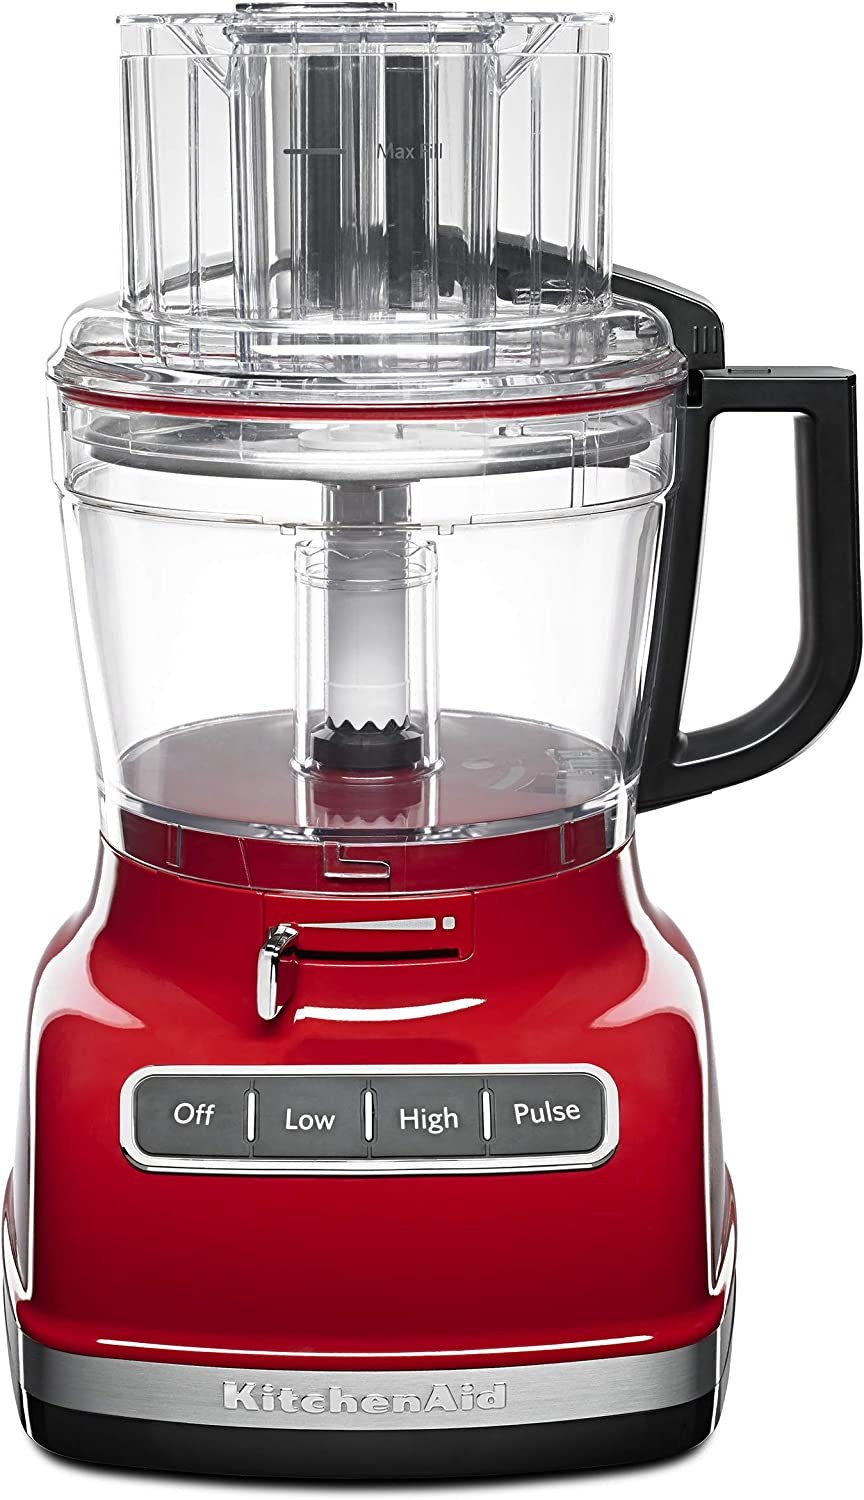 KitchenAid KFP1133ER 11-Cup online shopping Food Finally resale start Processor Syst Slice Exact with